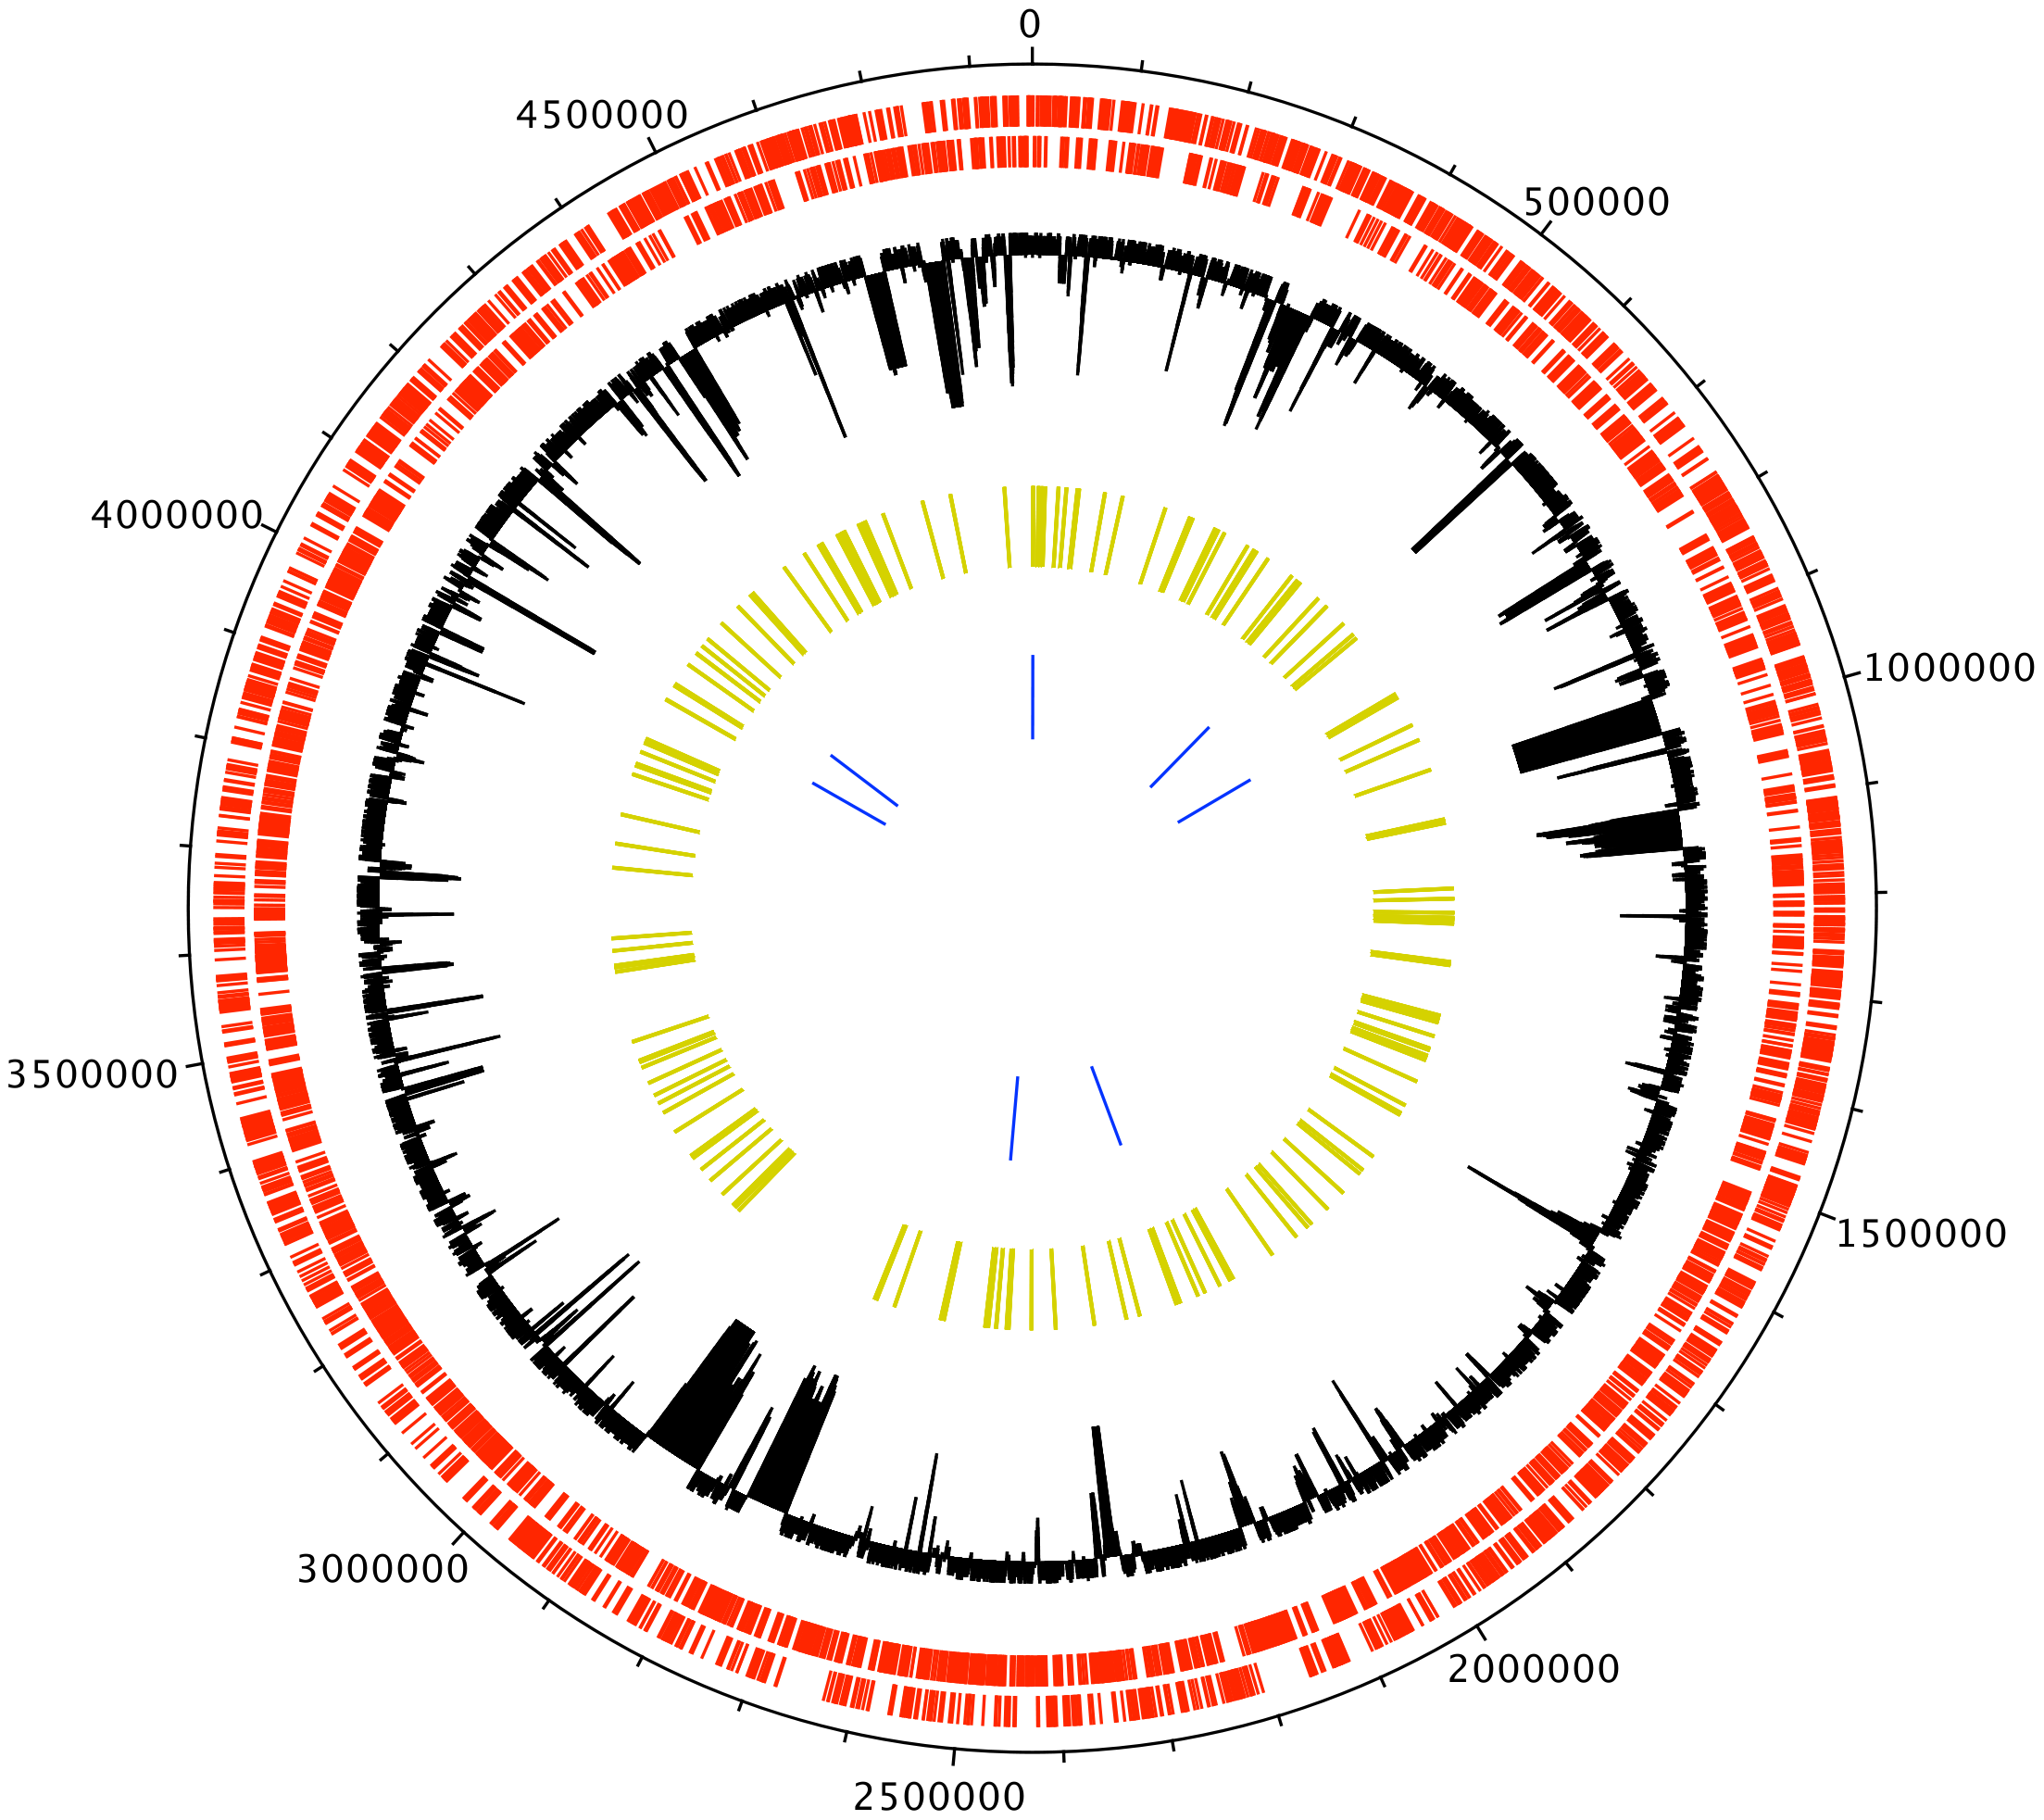 The circle represents the Typhimurium LT2 genome <em class=&quot;ref&quot;>[<b>17</b>]</em>.